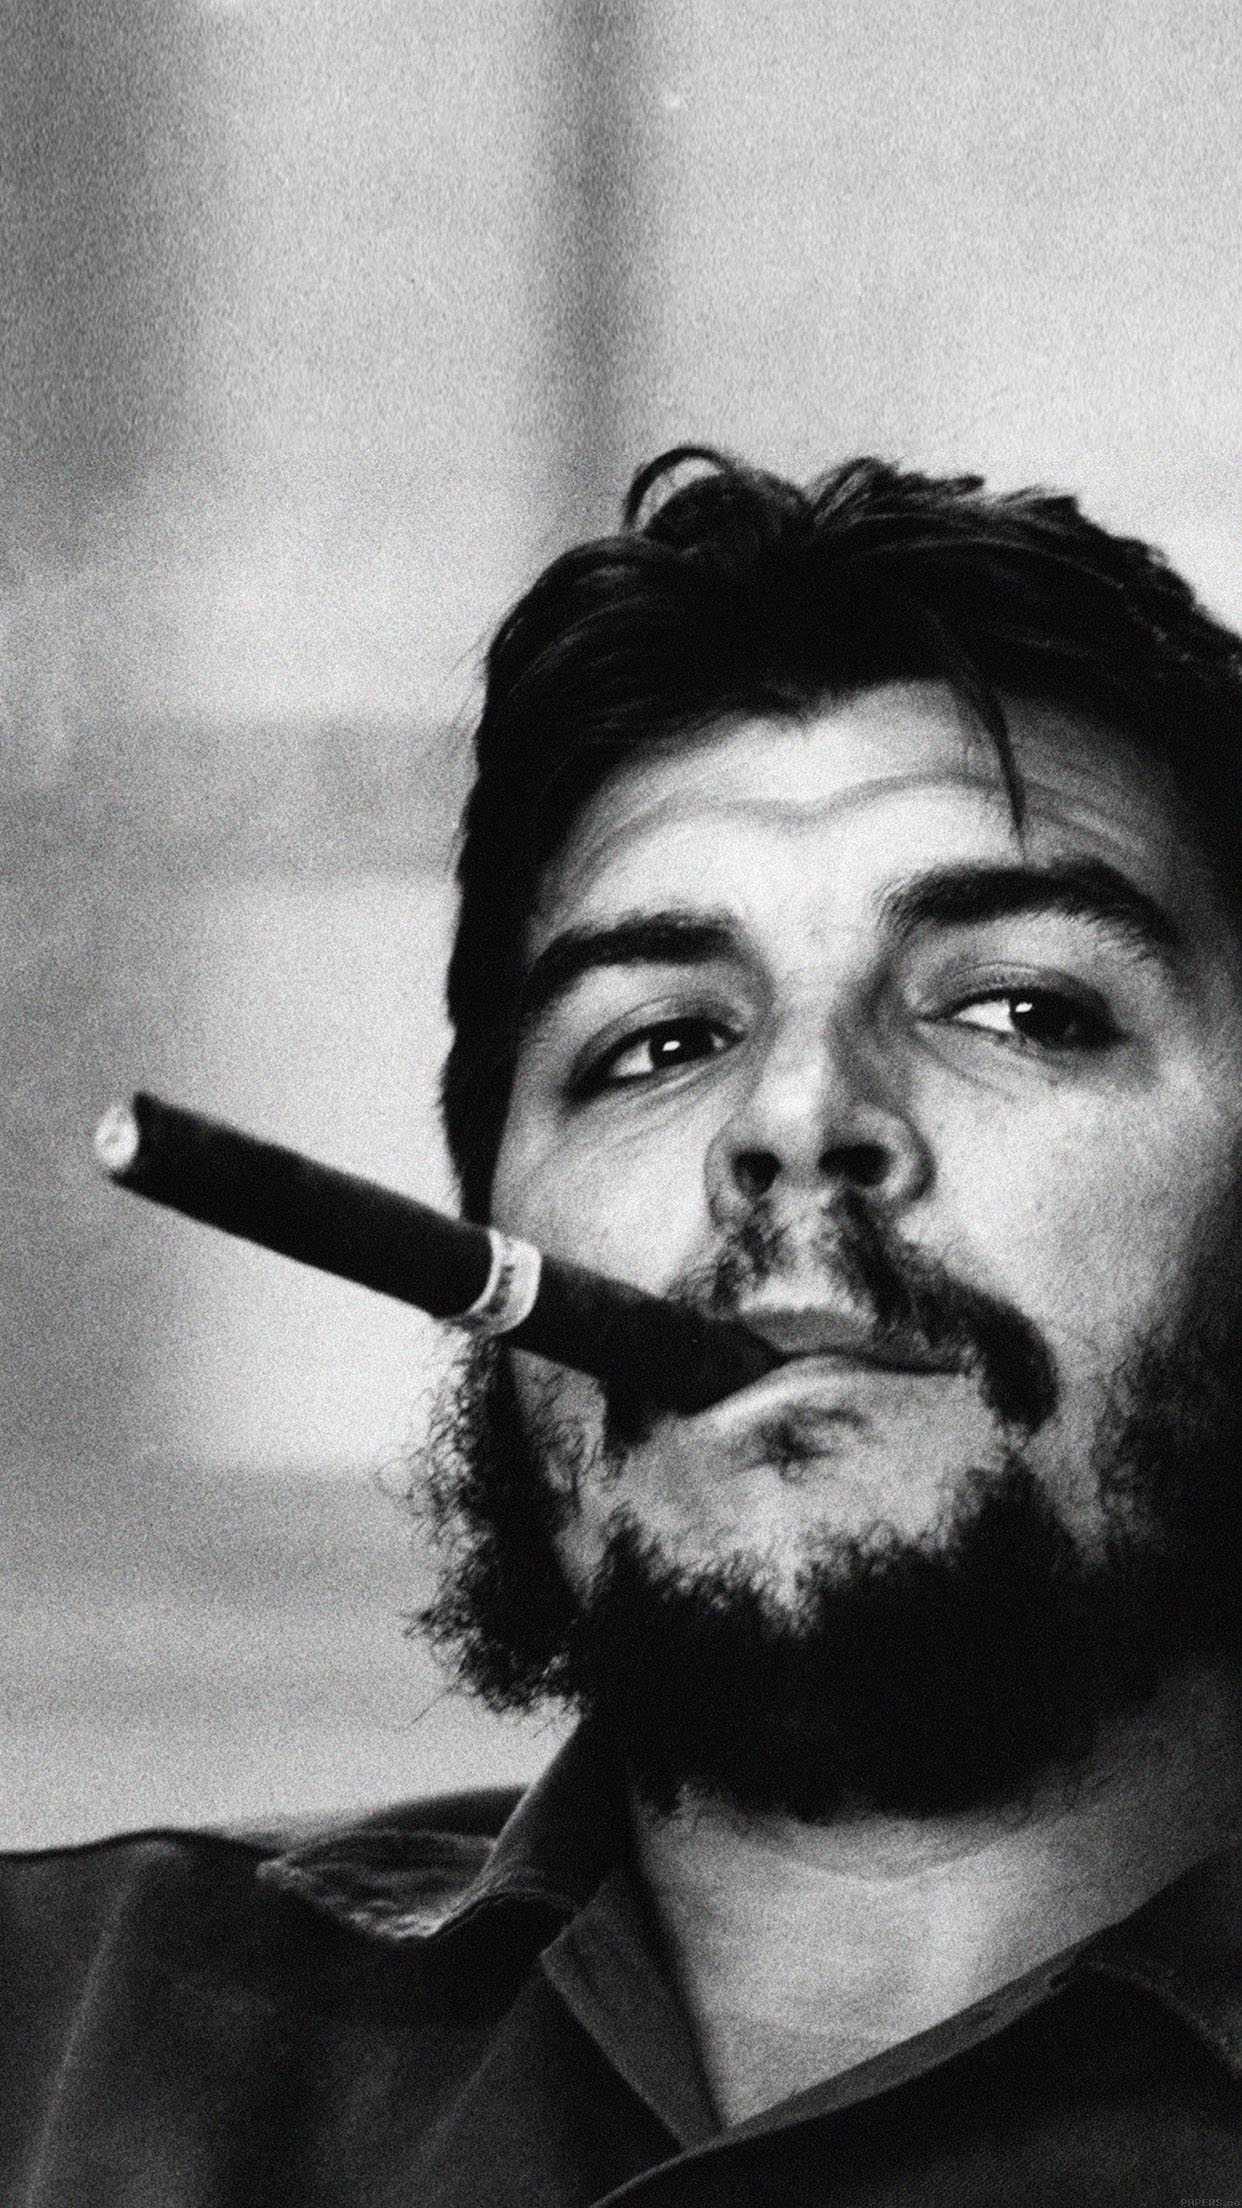 Wallpaper Hd For Ipad Pro Ha79 Wallpaper Che Guevara Face Papers Co